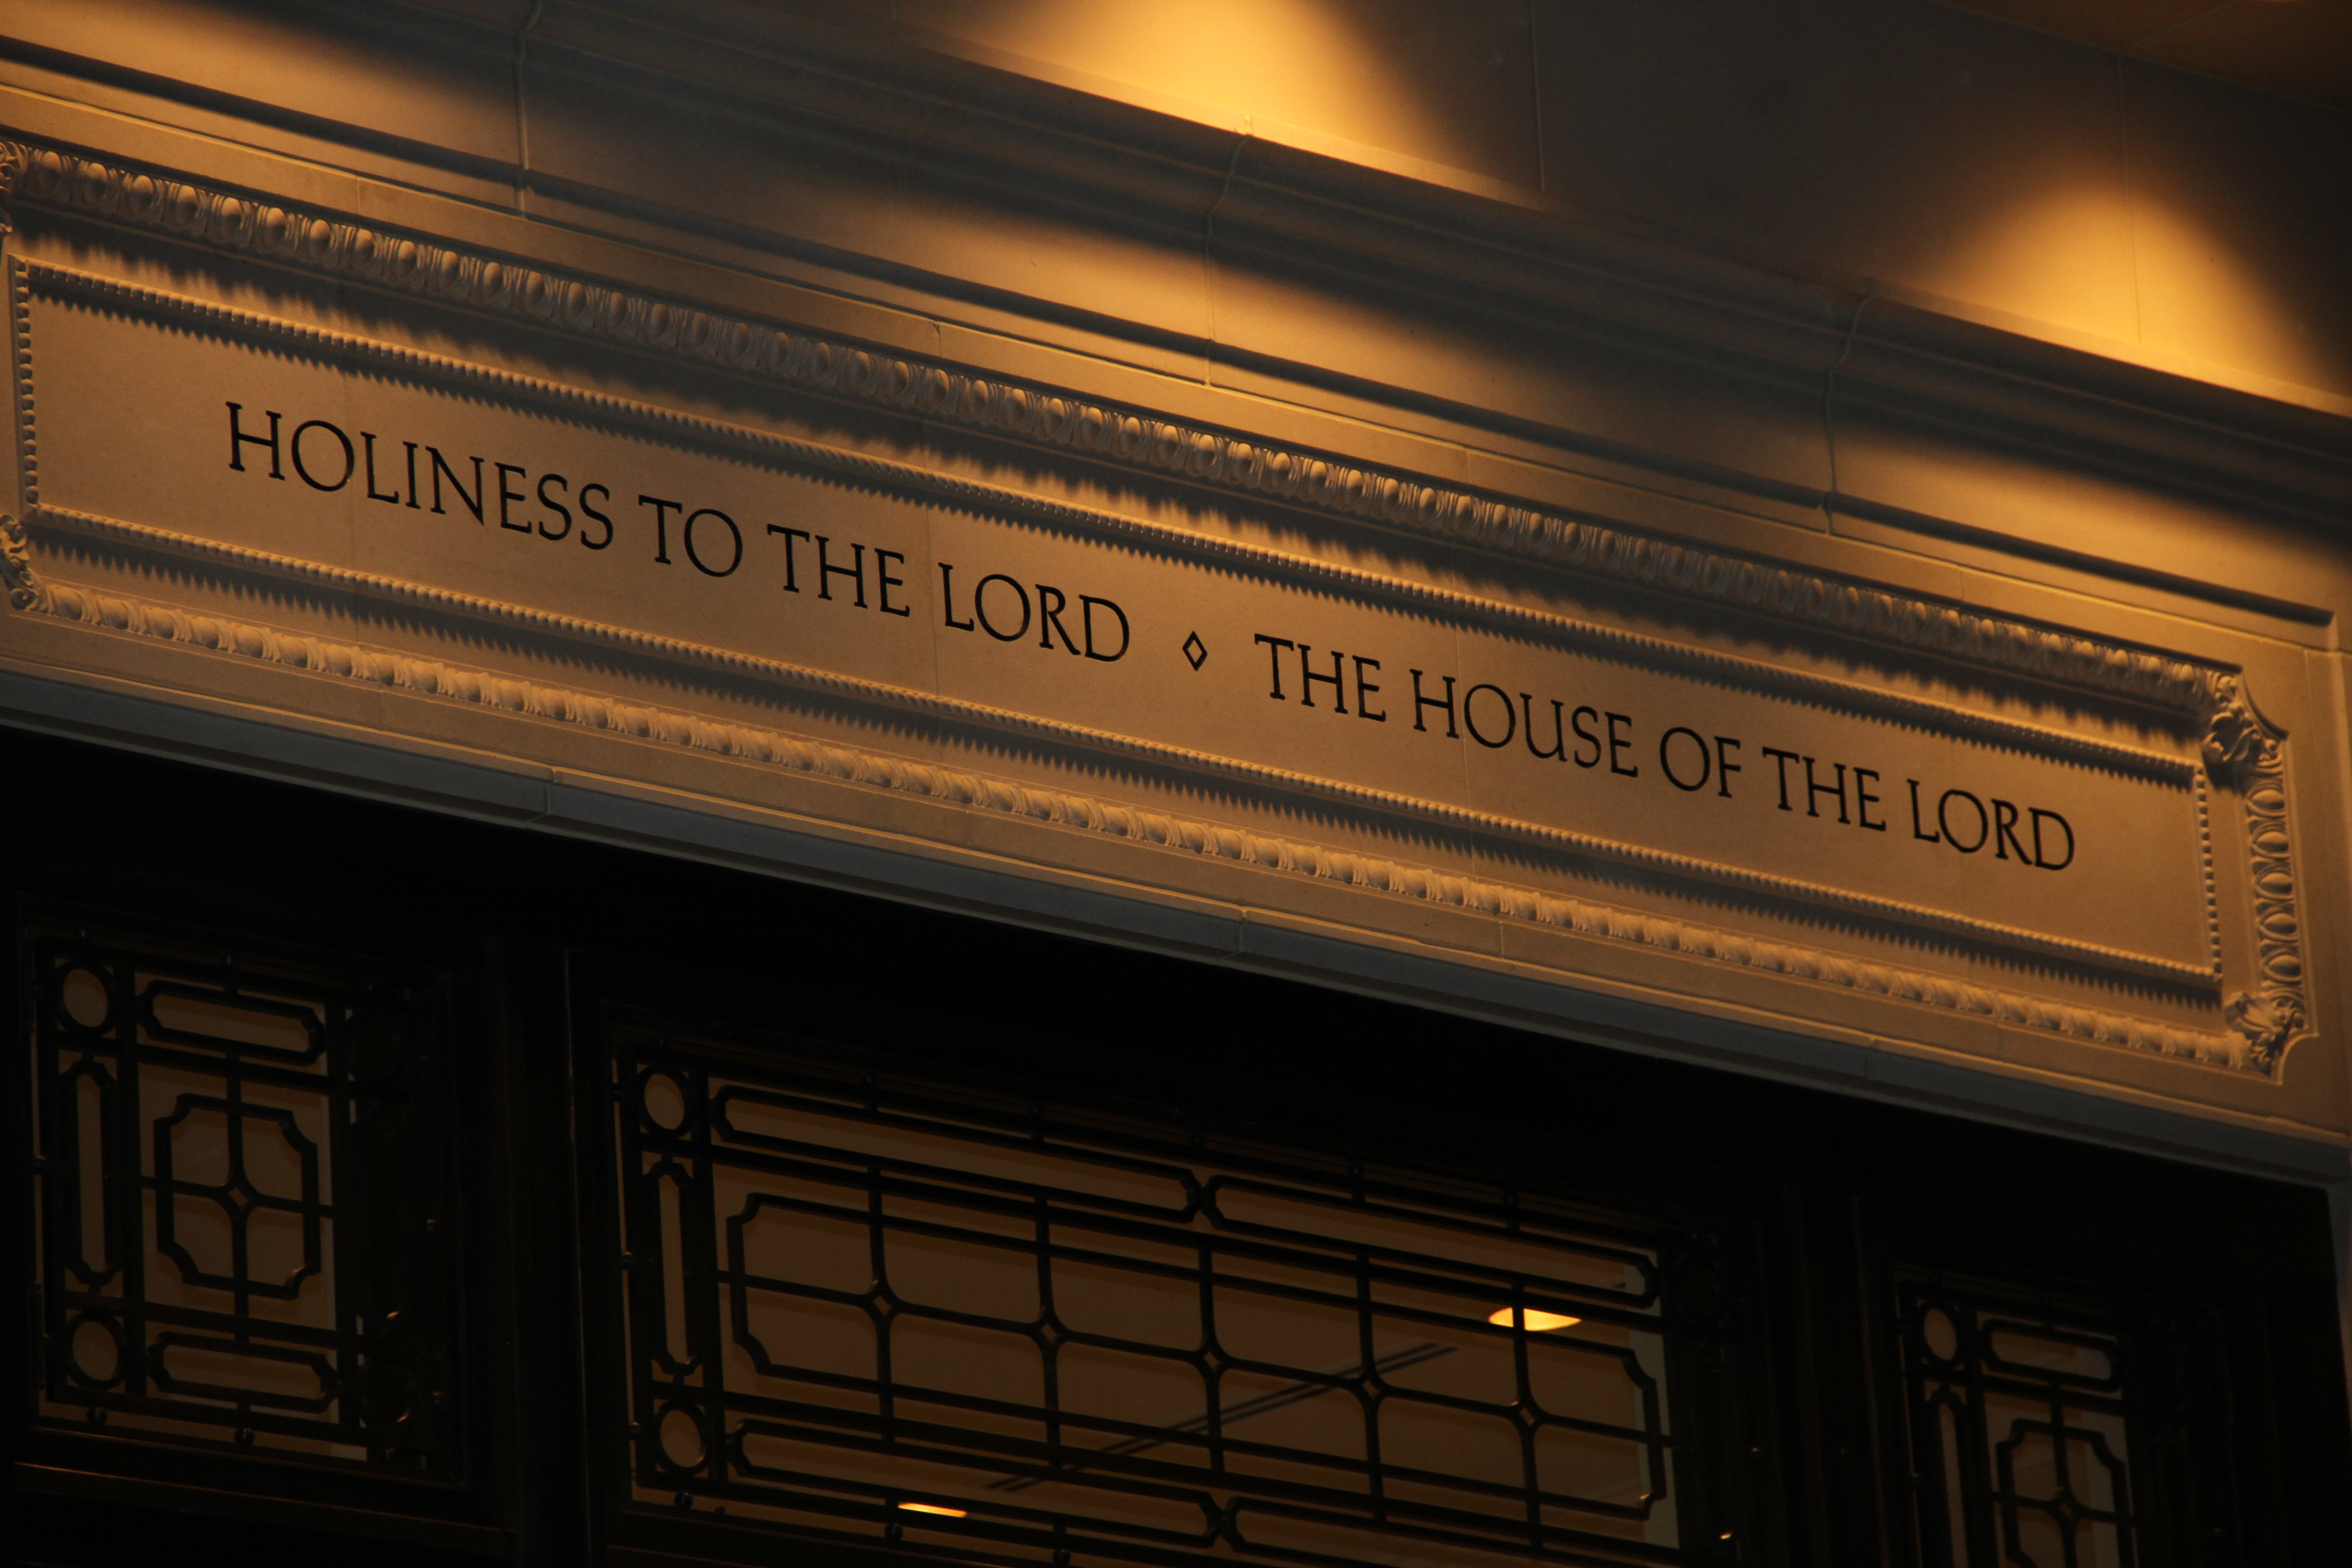 The inscription above the entrance of the Memphis Tennessee Temple on May 4, 2019.